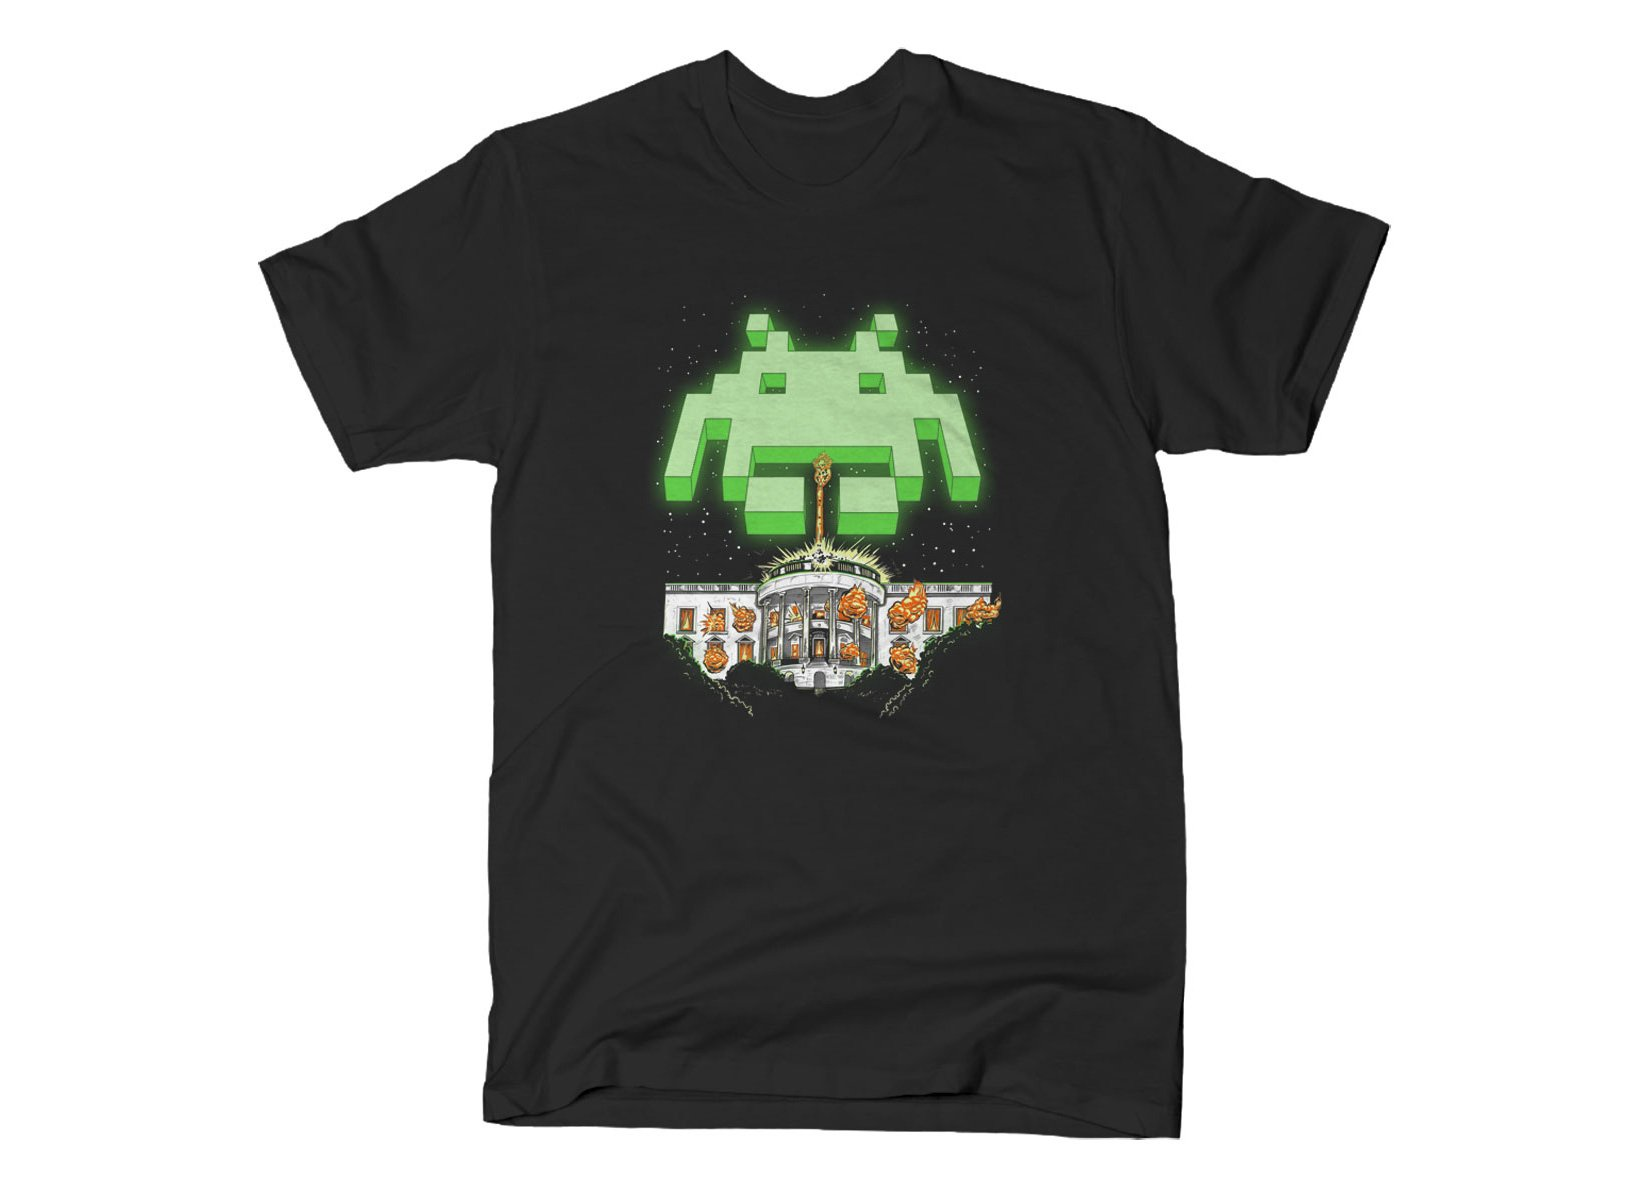 Invader Day on Mens T-Shirt